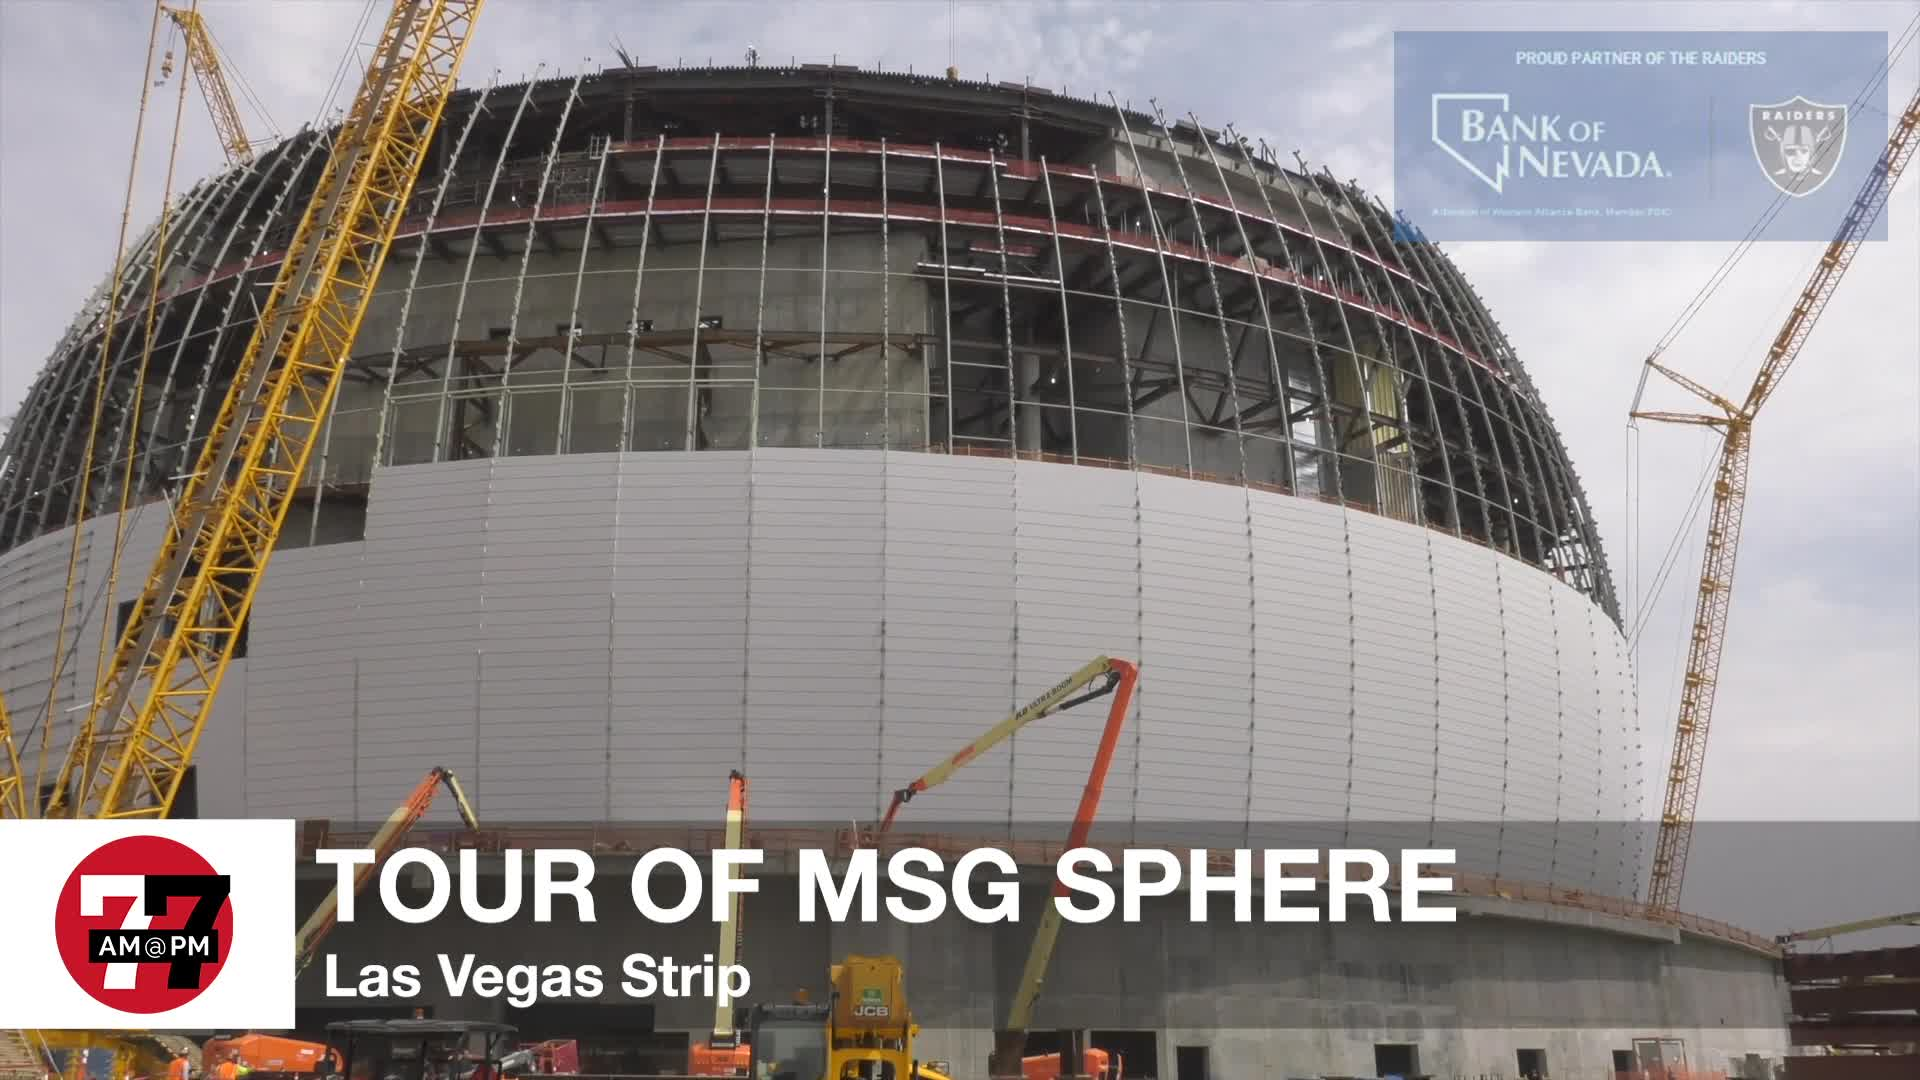 7@7PM Tour Of Msg Sphere